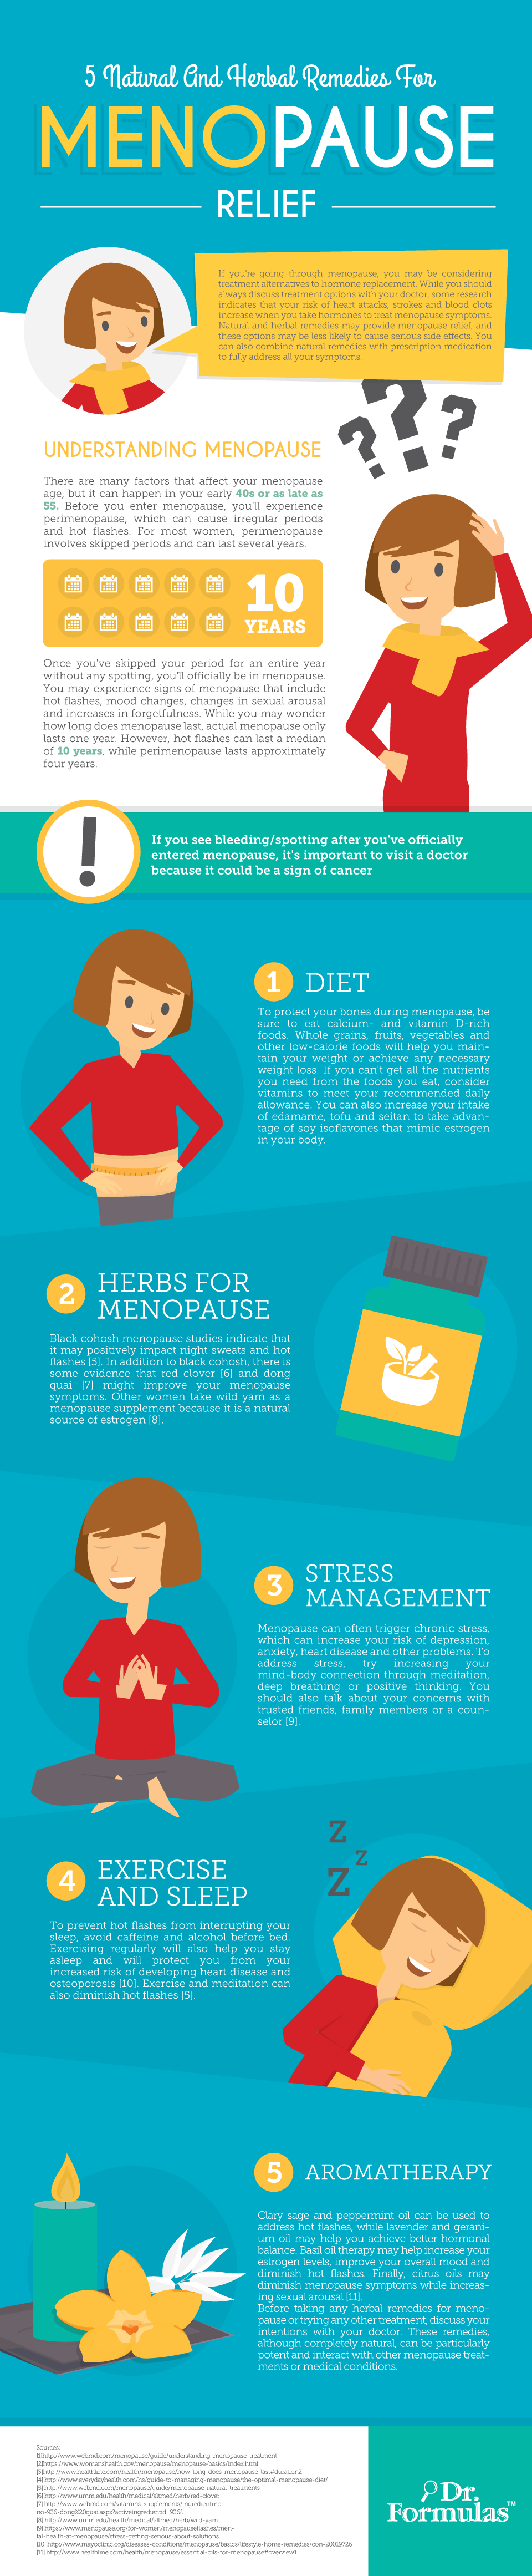 Menopause Natural Remedies